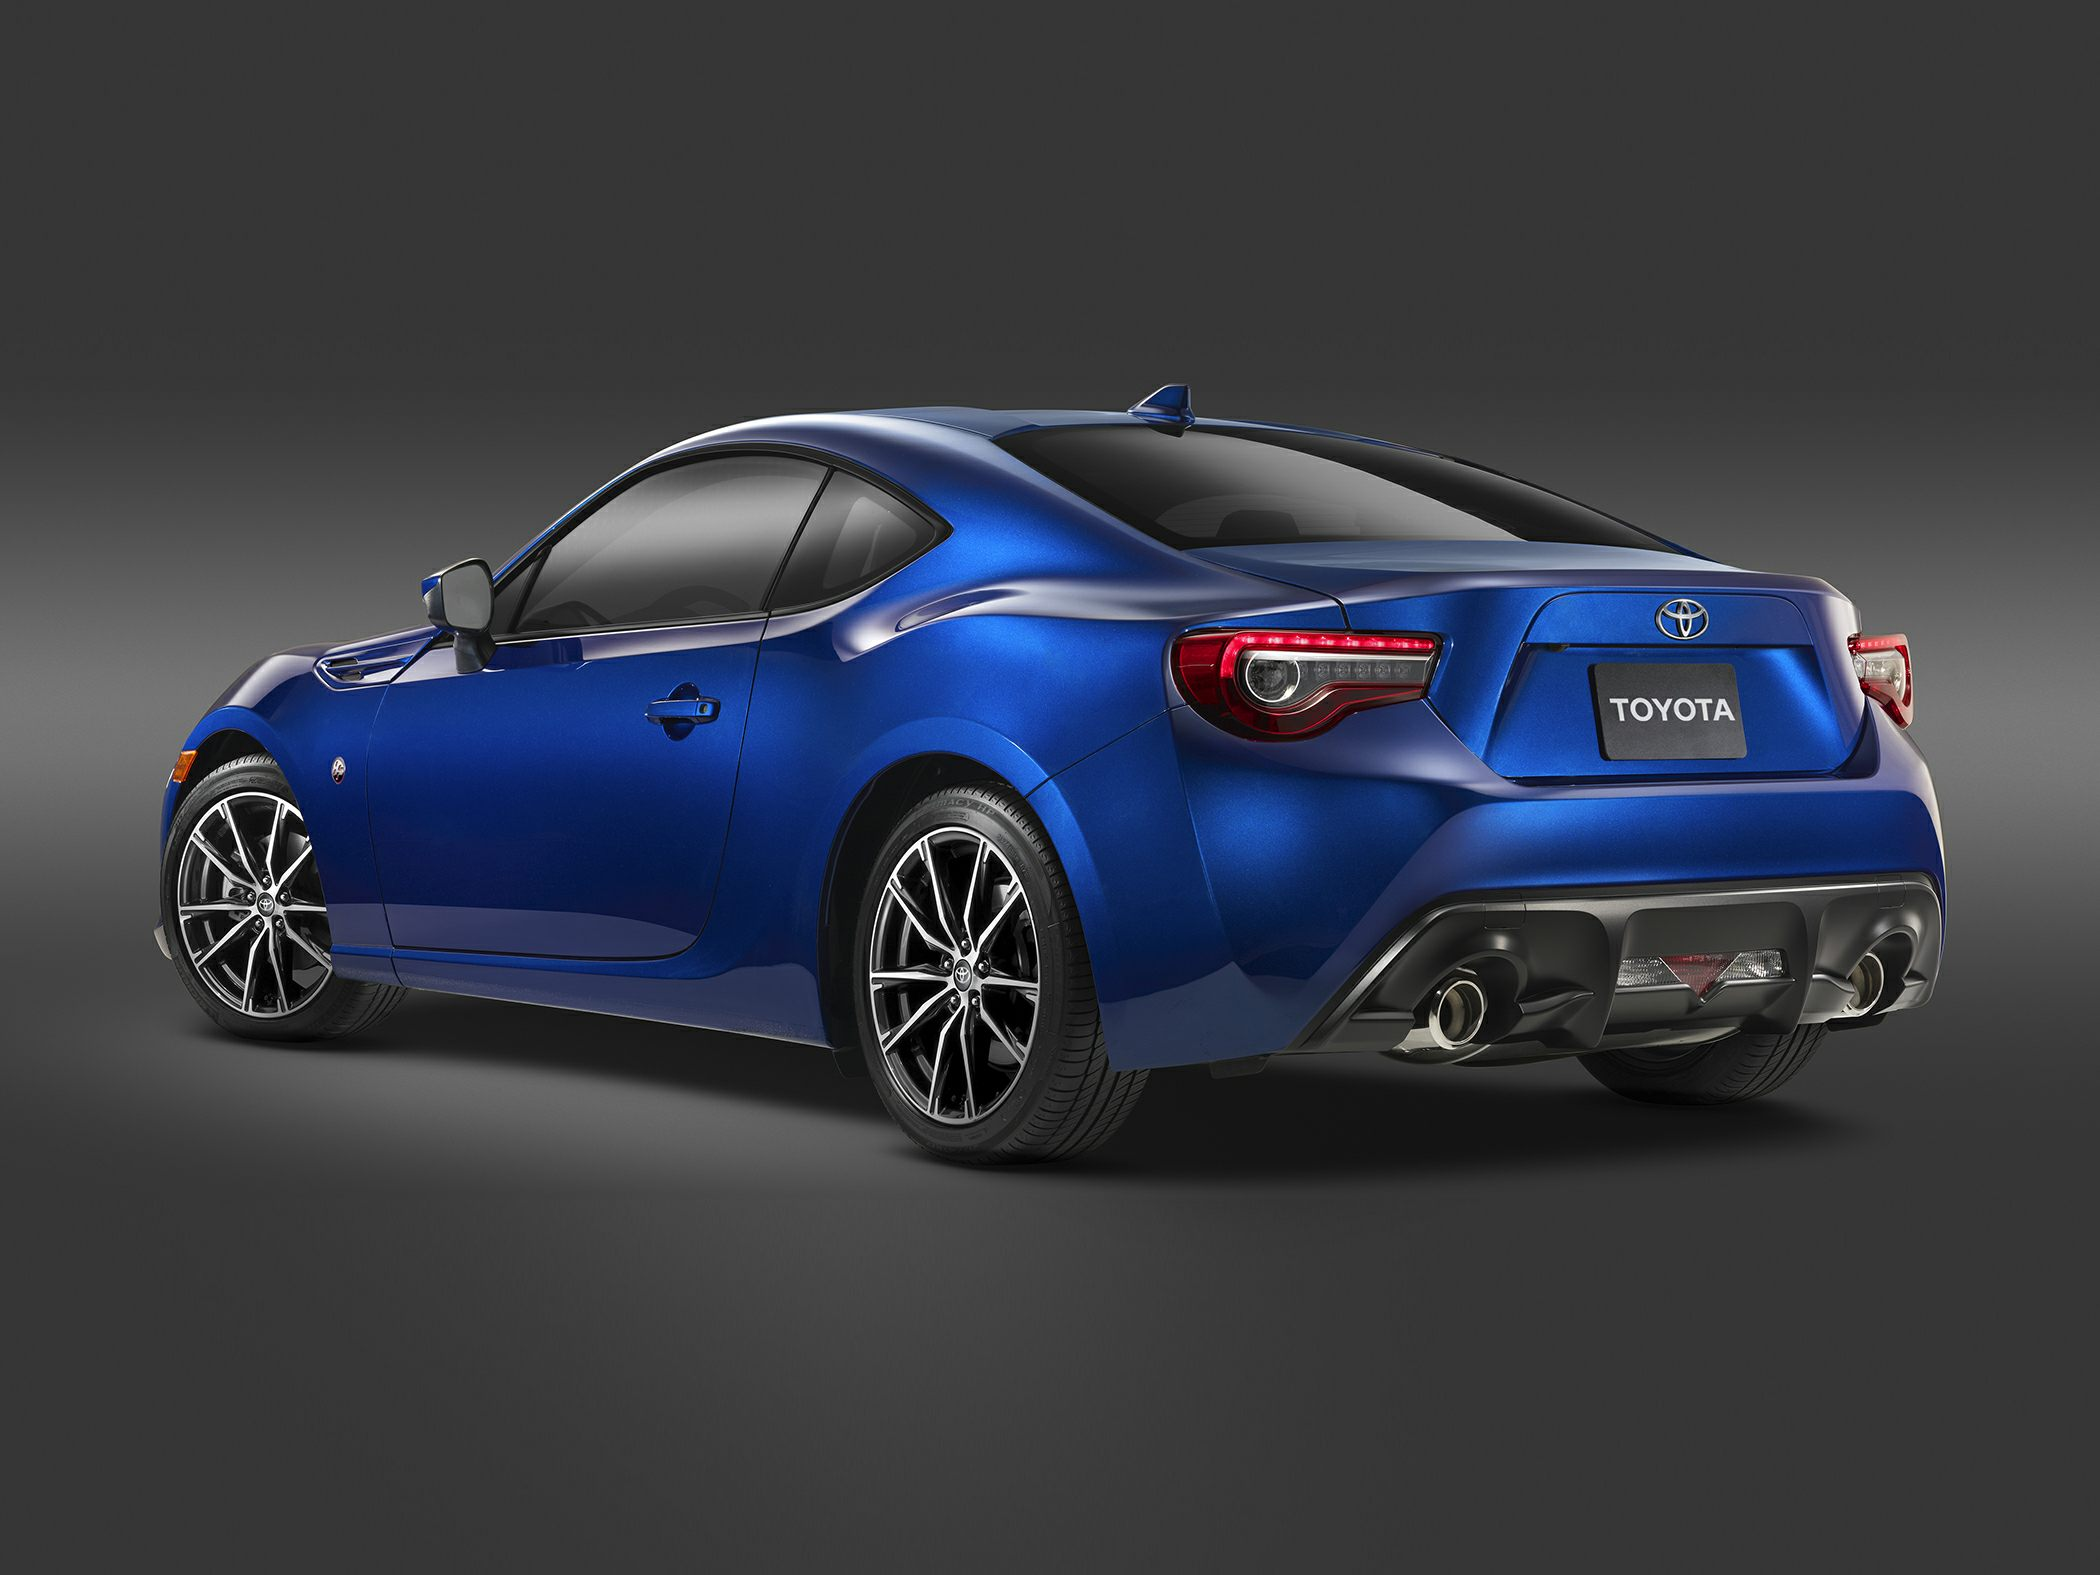 2018 Toyota 86 For Sale In Calgary Country Hills Toyota